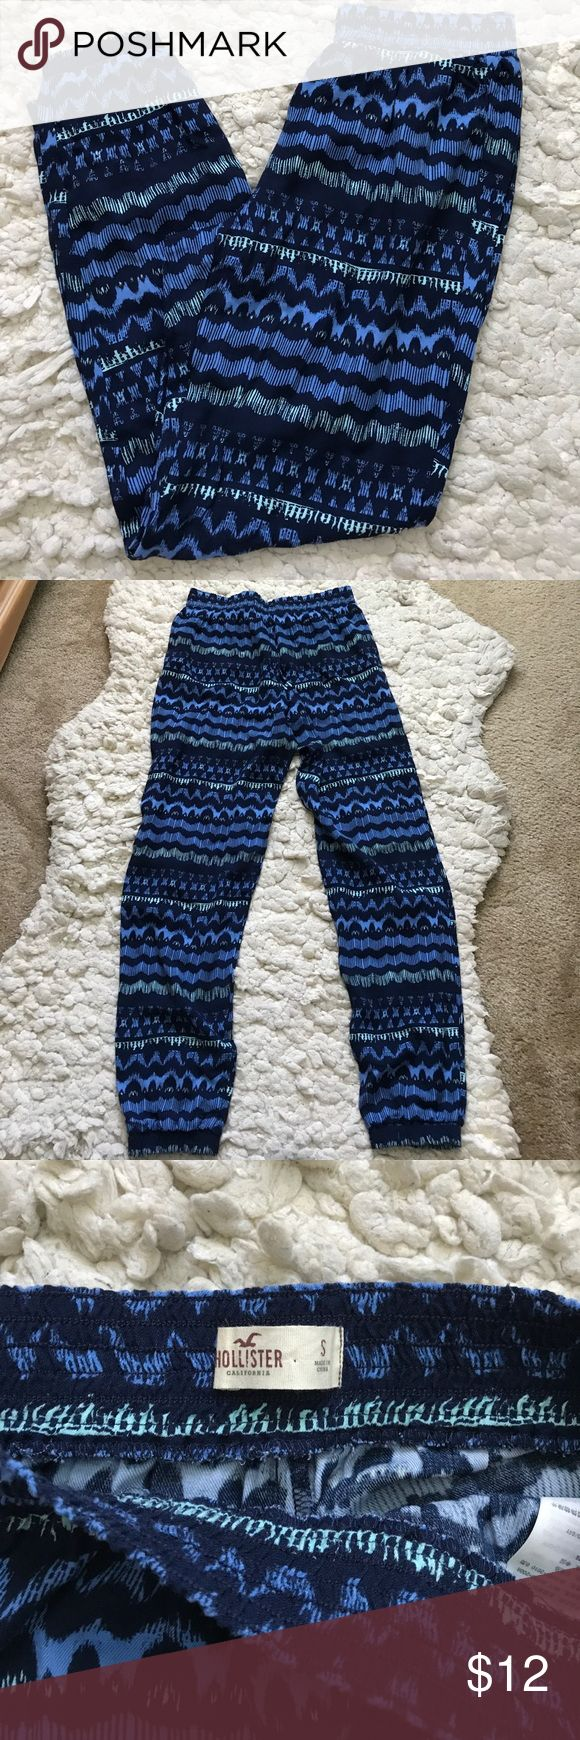 Hollister soft pant joggers Never been worn. Soft pant joggers. Great for the beach or lounging! Hollister Pants Track Pants & Joggers